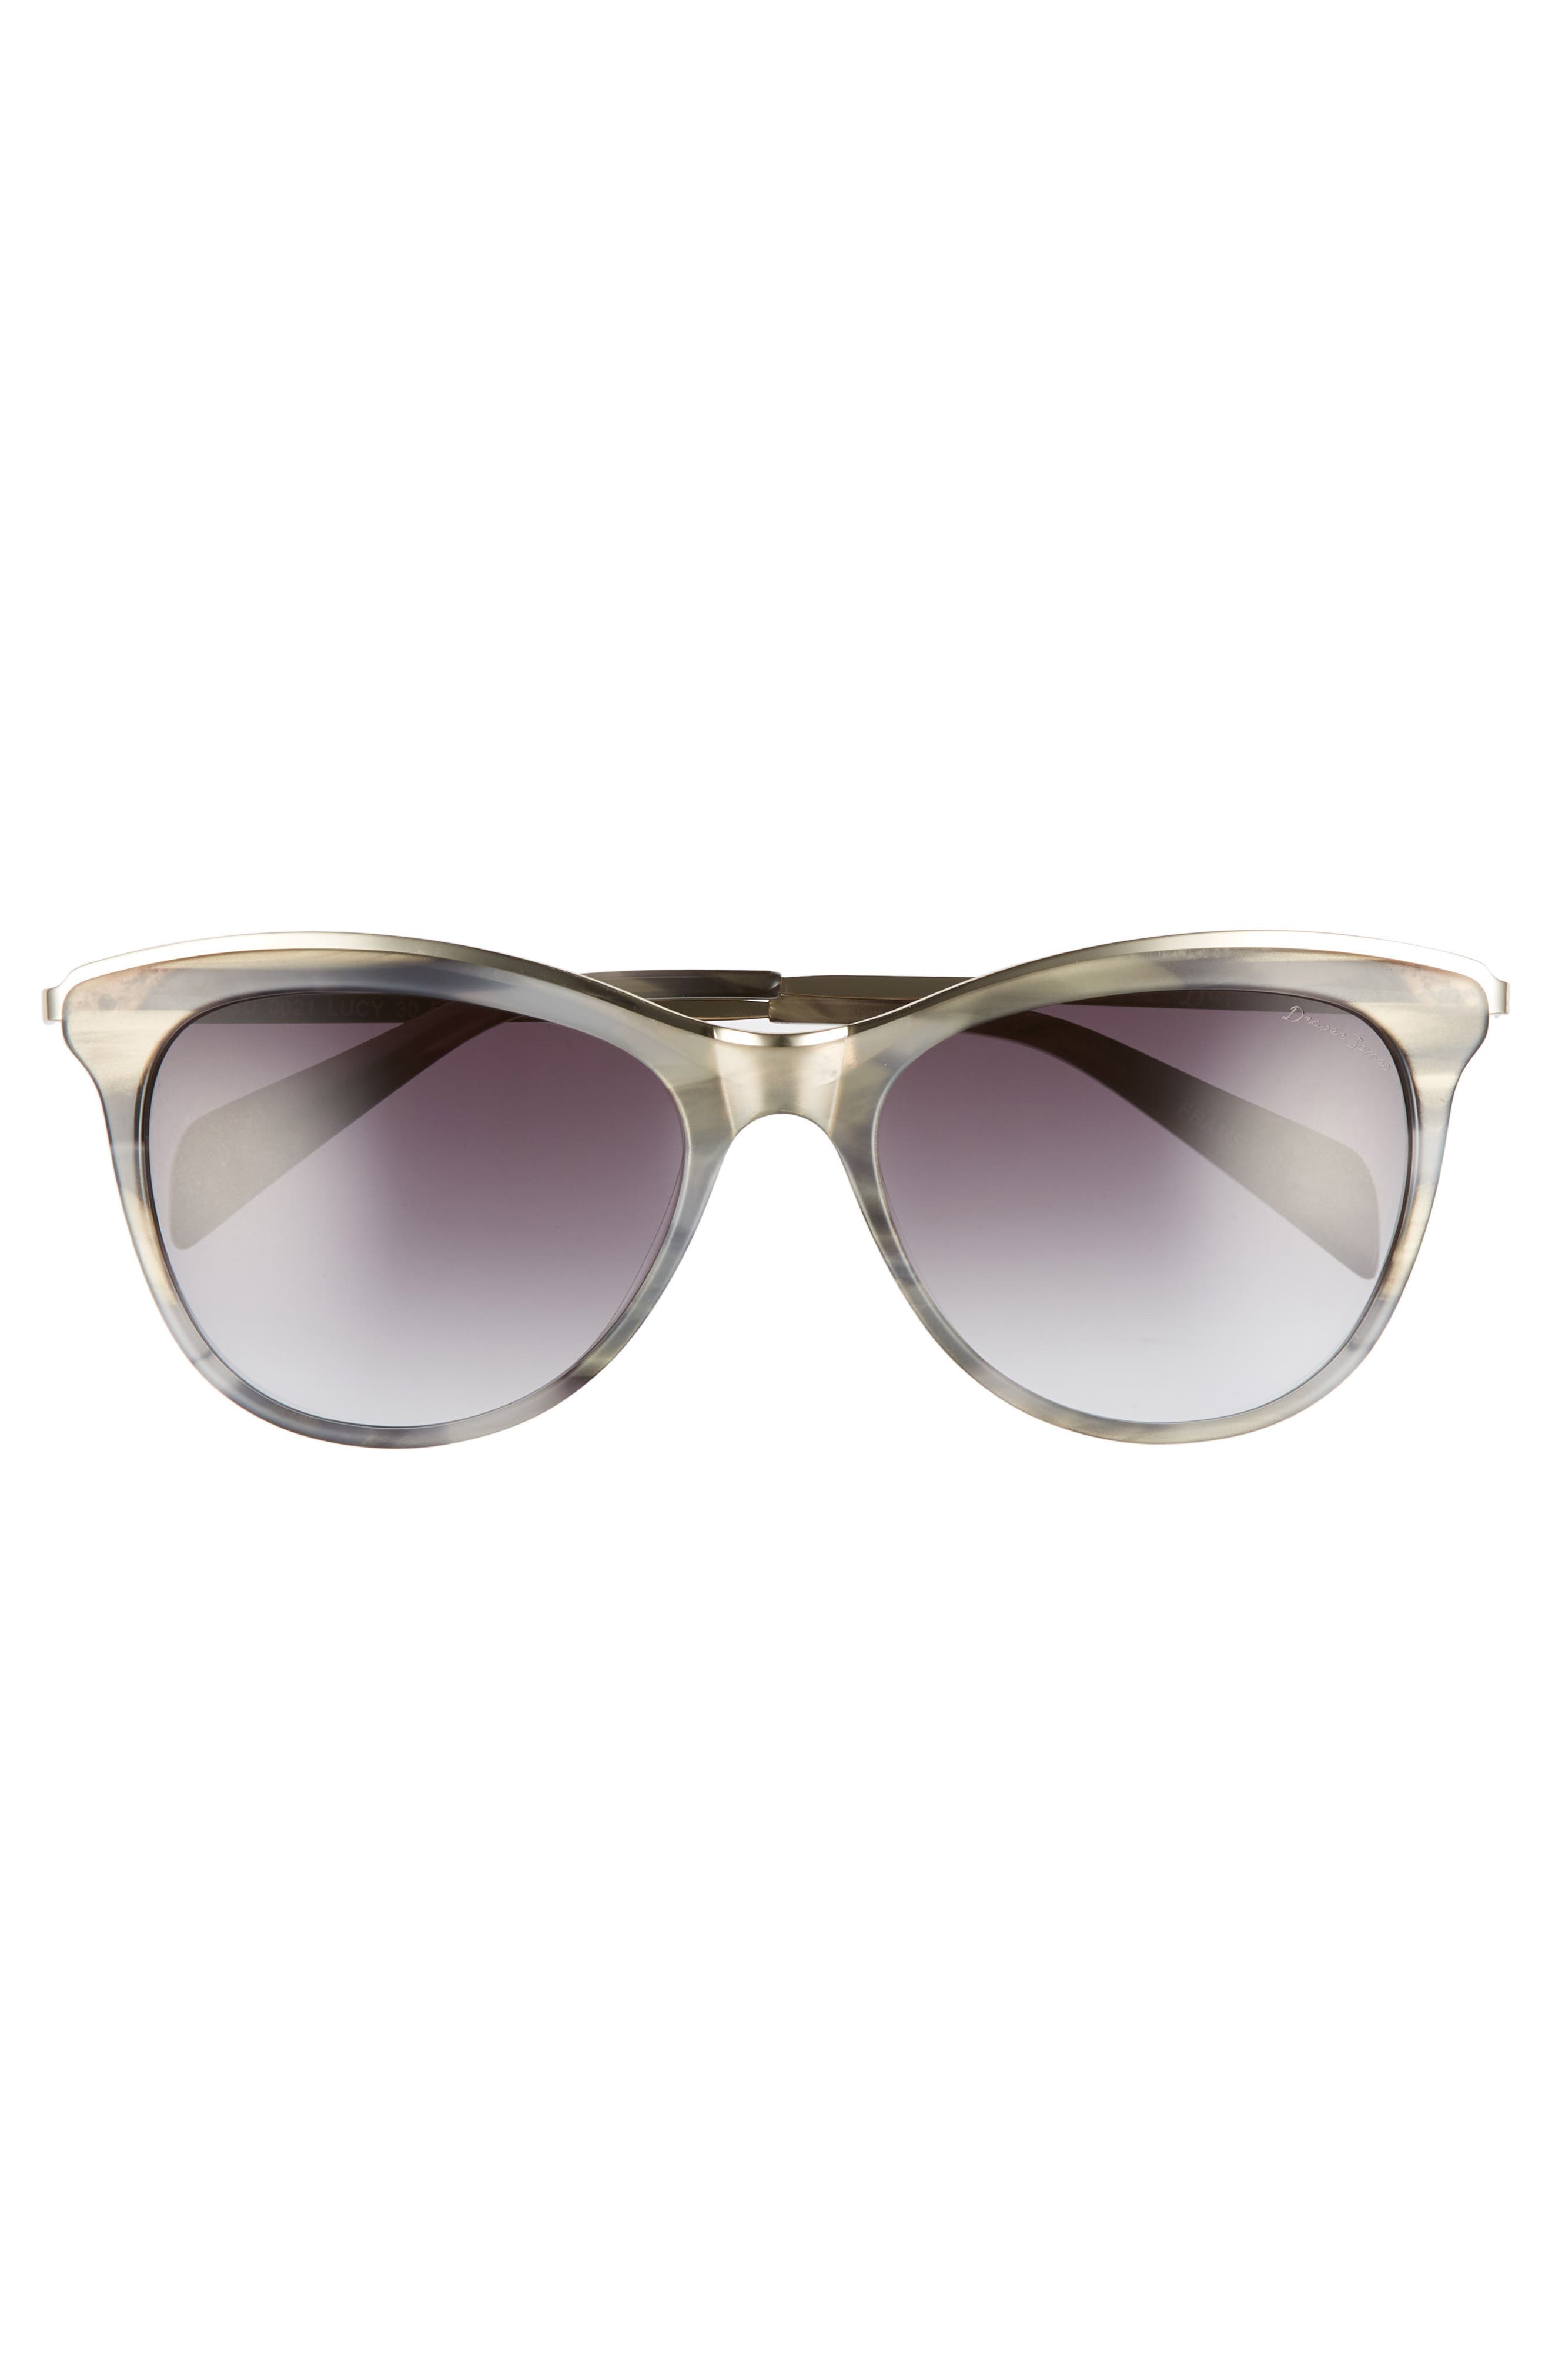 56mm Cat Eye Sunglasses,                             Alternate thumbnail 3, color,                             GREY